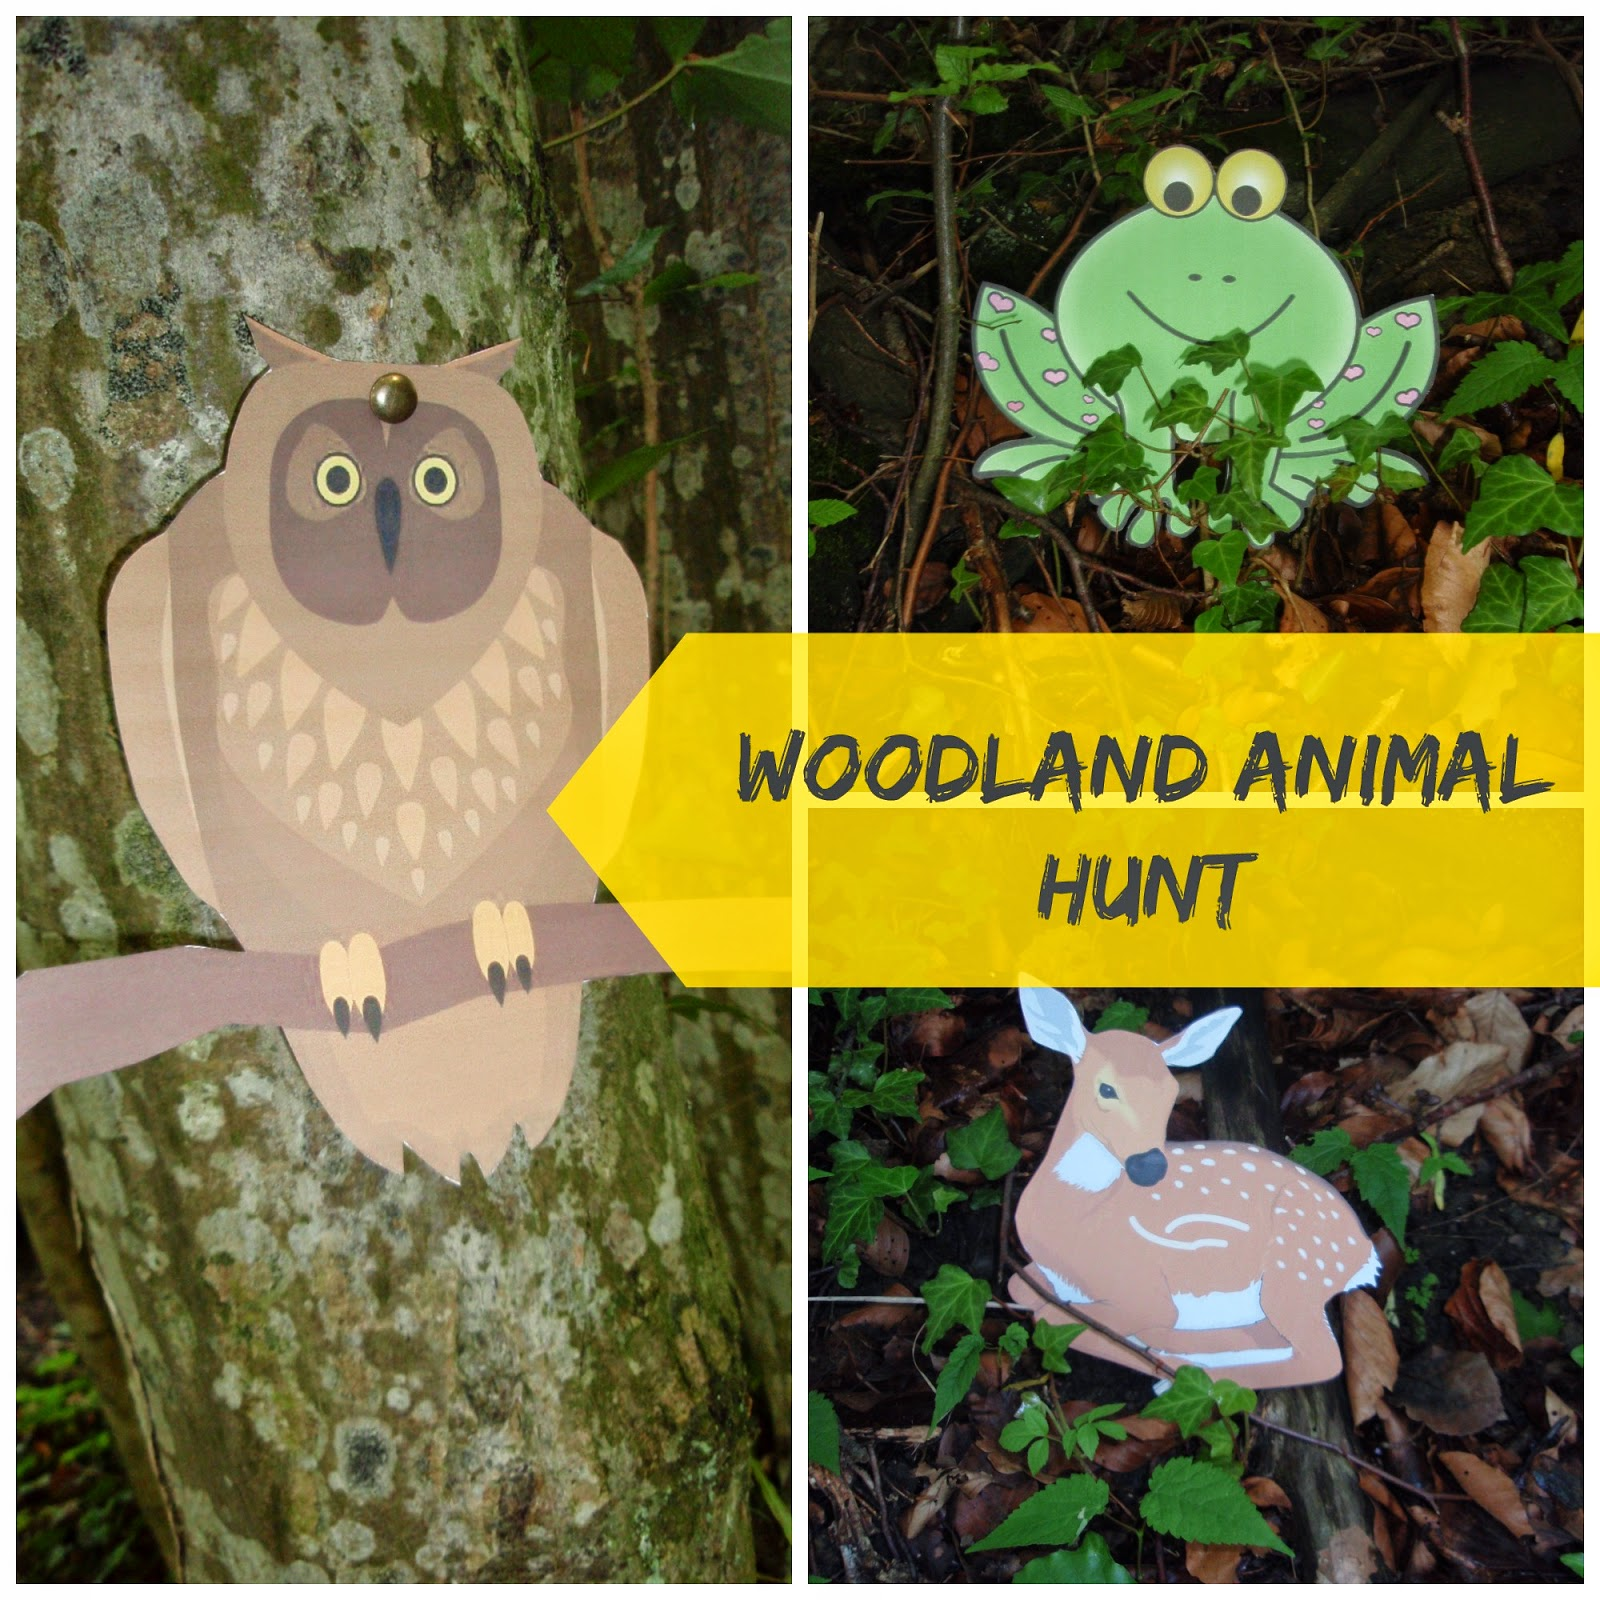 Bottle brush woodland animals - Filename Woodland Animal Hunt Jpg